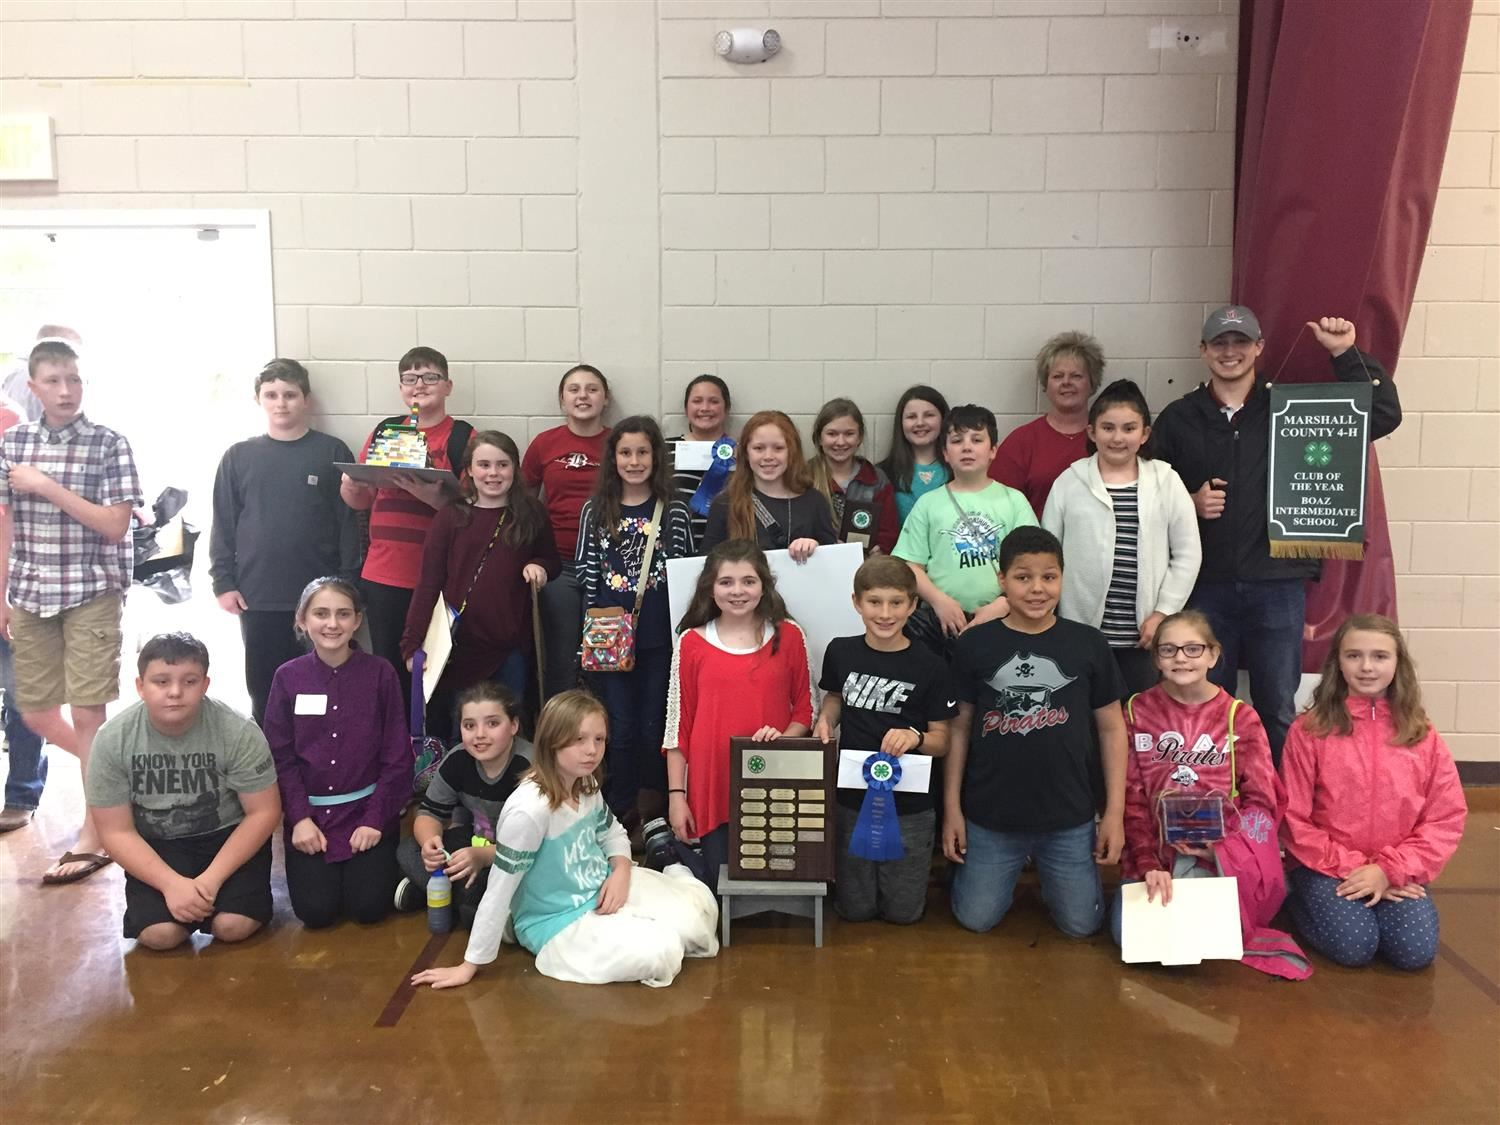 Boaz Intermediate School was named the Marshall County 4H Club of the Year.  Grayce Walker was named 4H President of the Year.  We are proud of our Pirates!